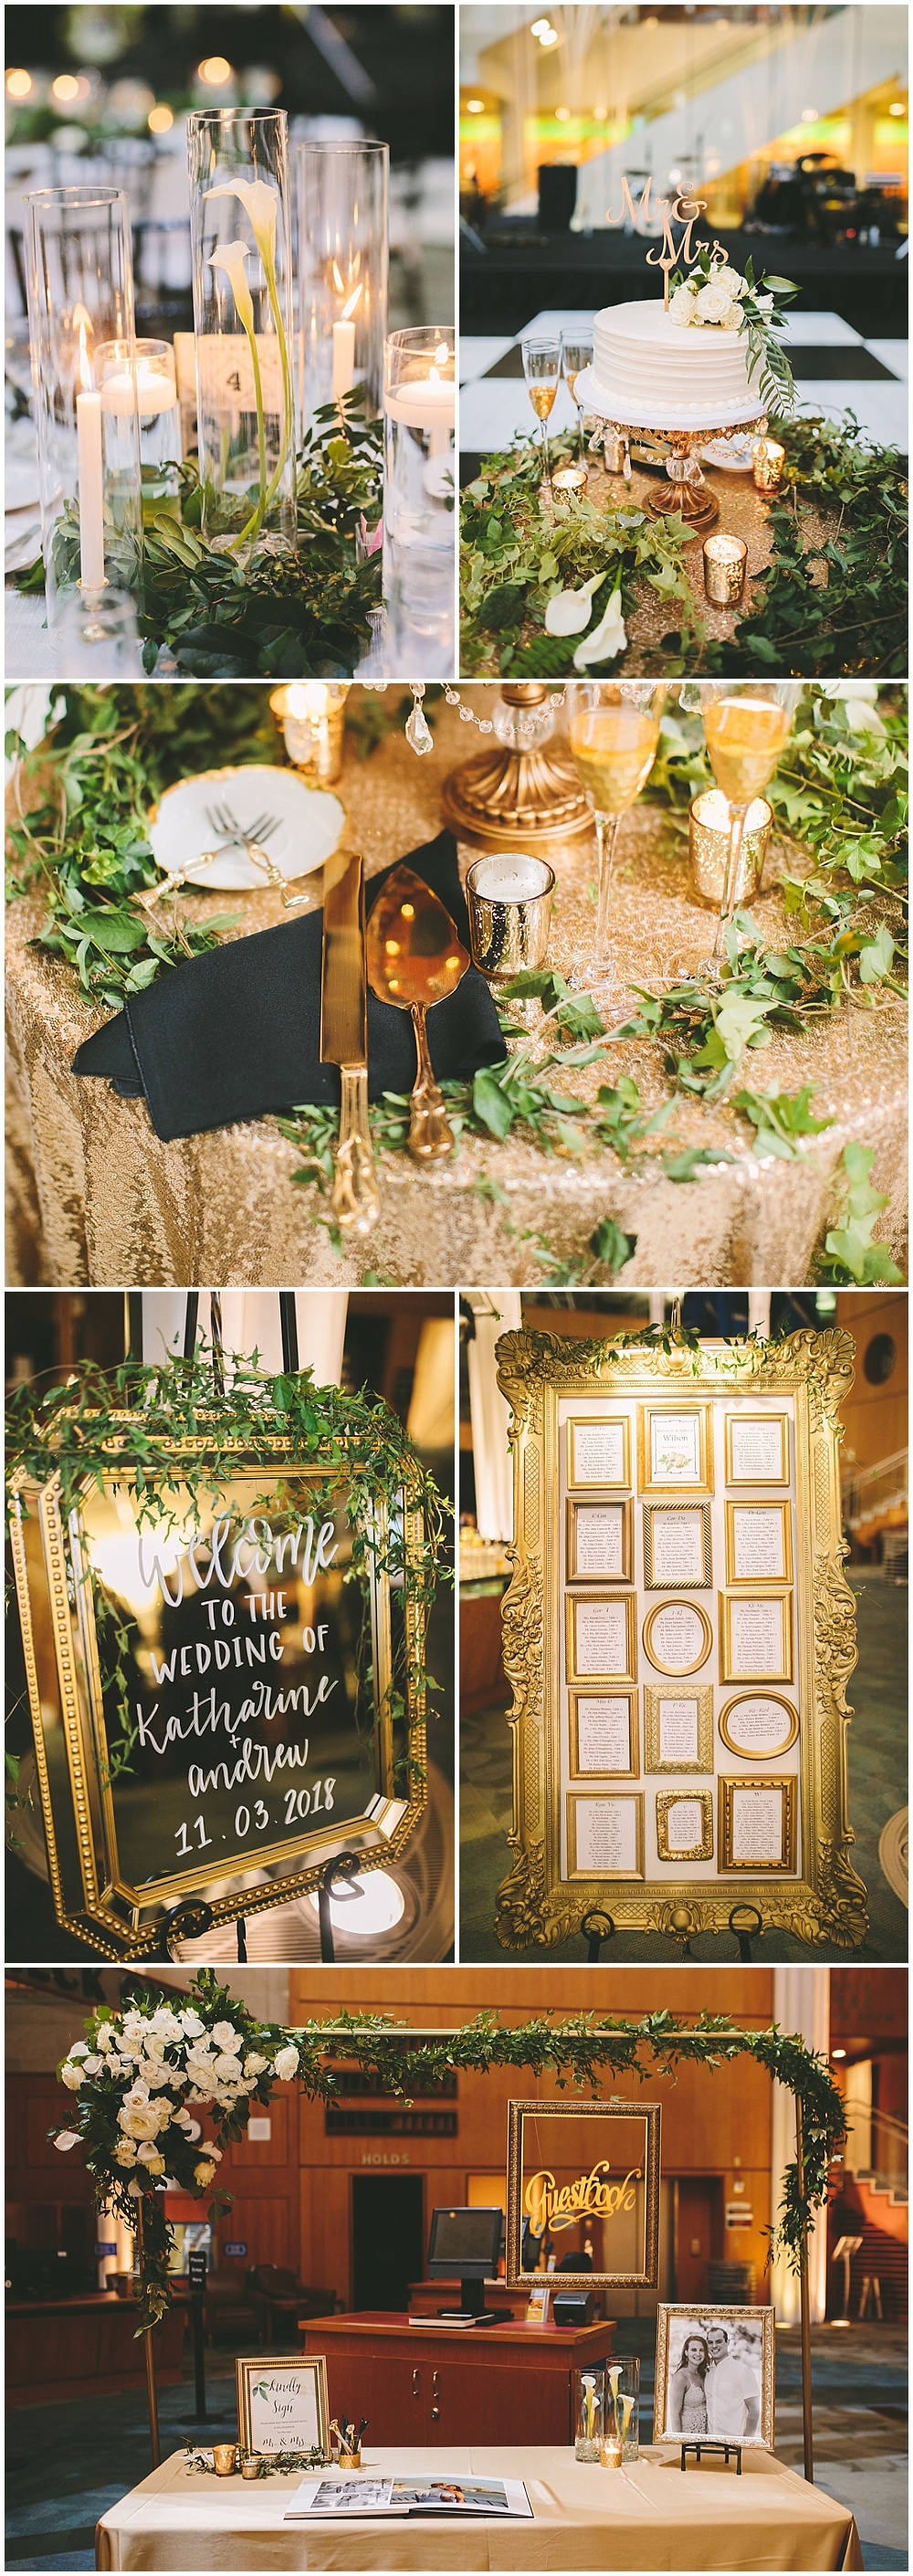 A timeless, modern wedding celebration at the Indianapolis Public Library. A black and white wedding with gold accents and a checkered dance floor. | Jessica Dum Wedding Coordination